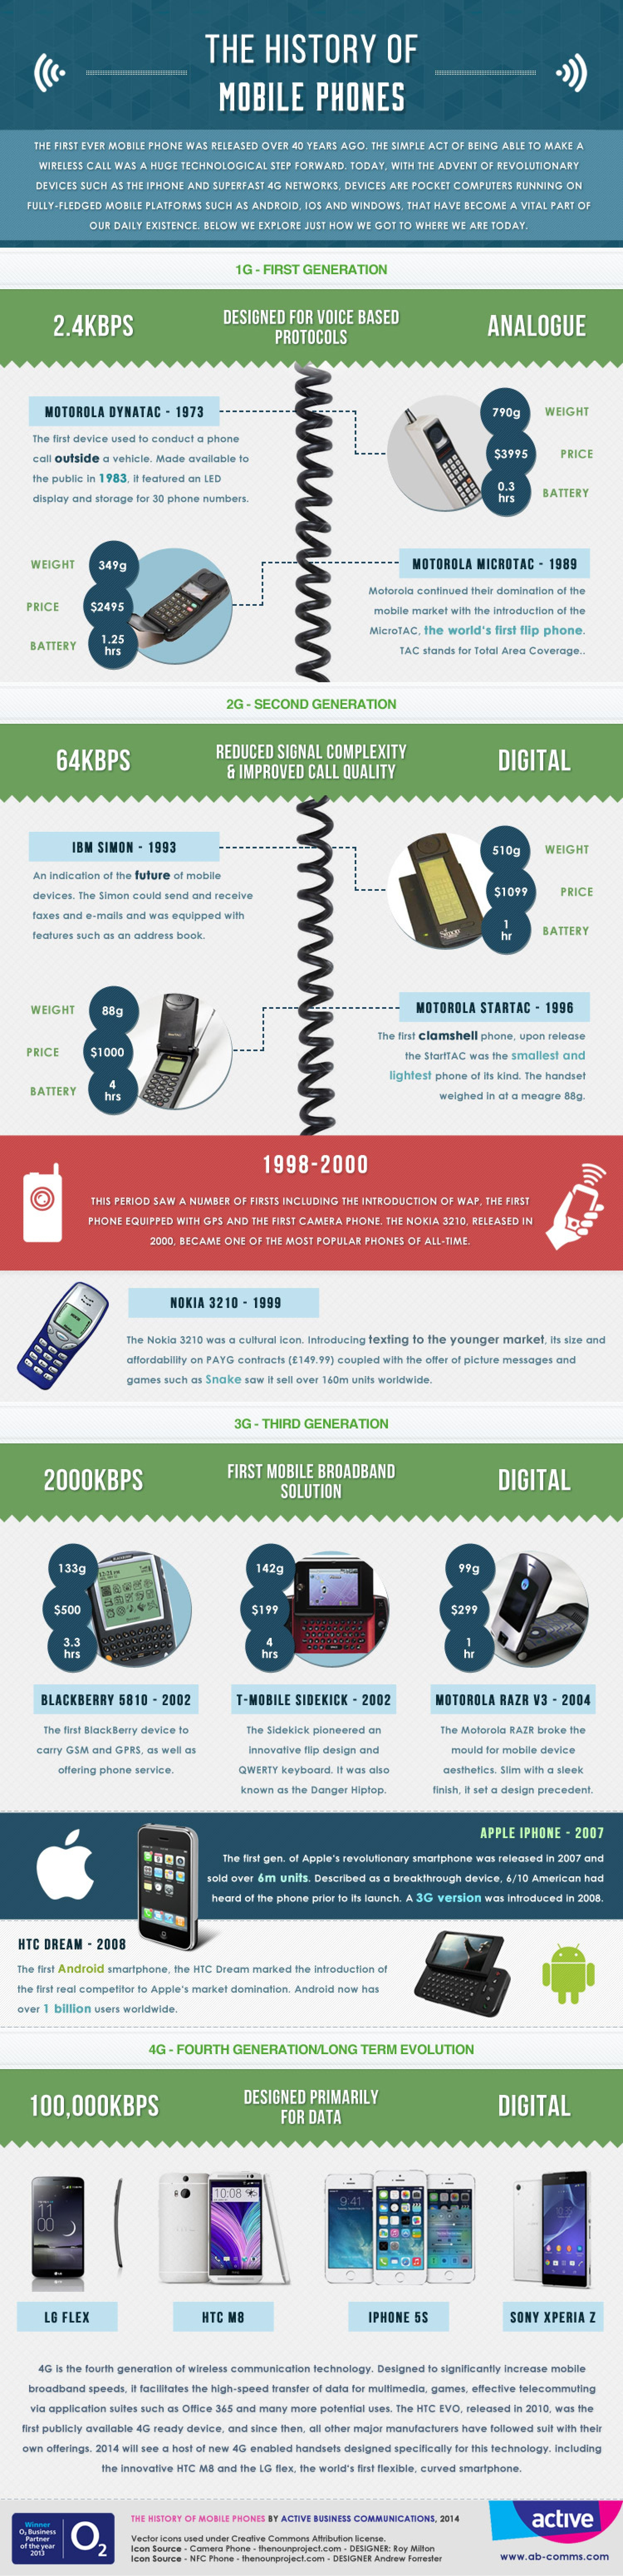 The history of mobile phones